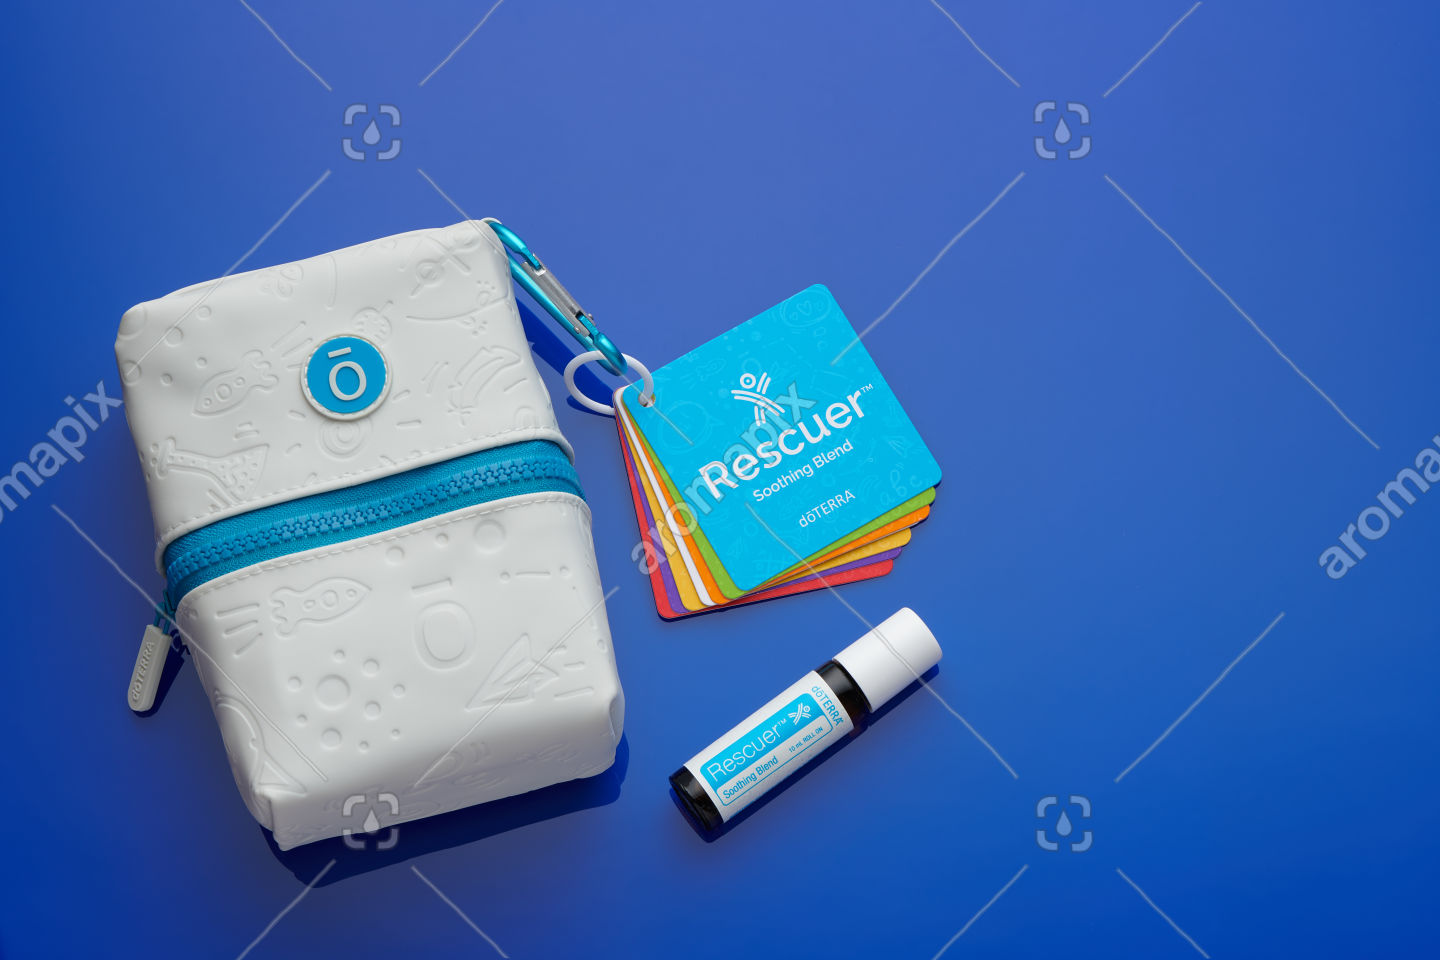 doTERRA Kids Oil Collection case, flashcards and Rescuer on blue